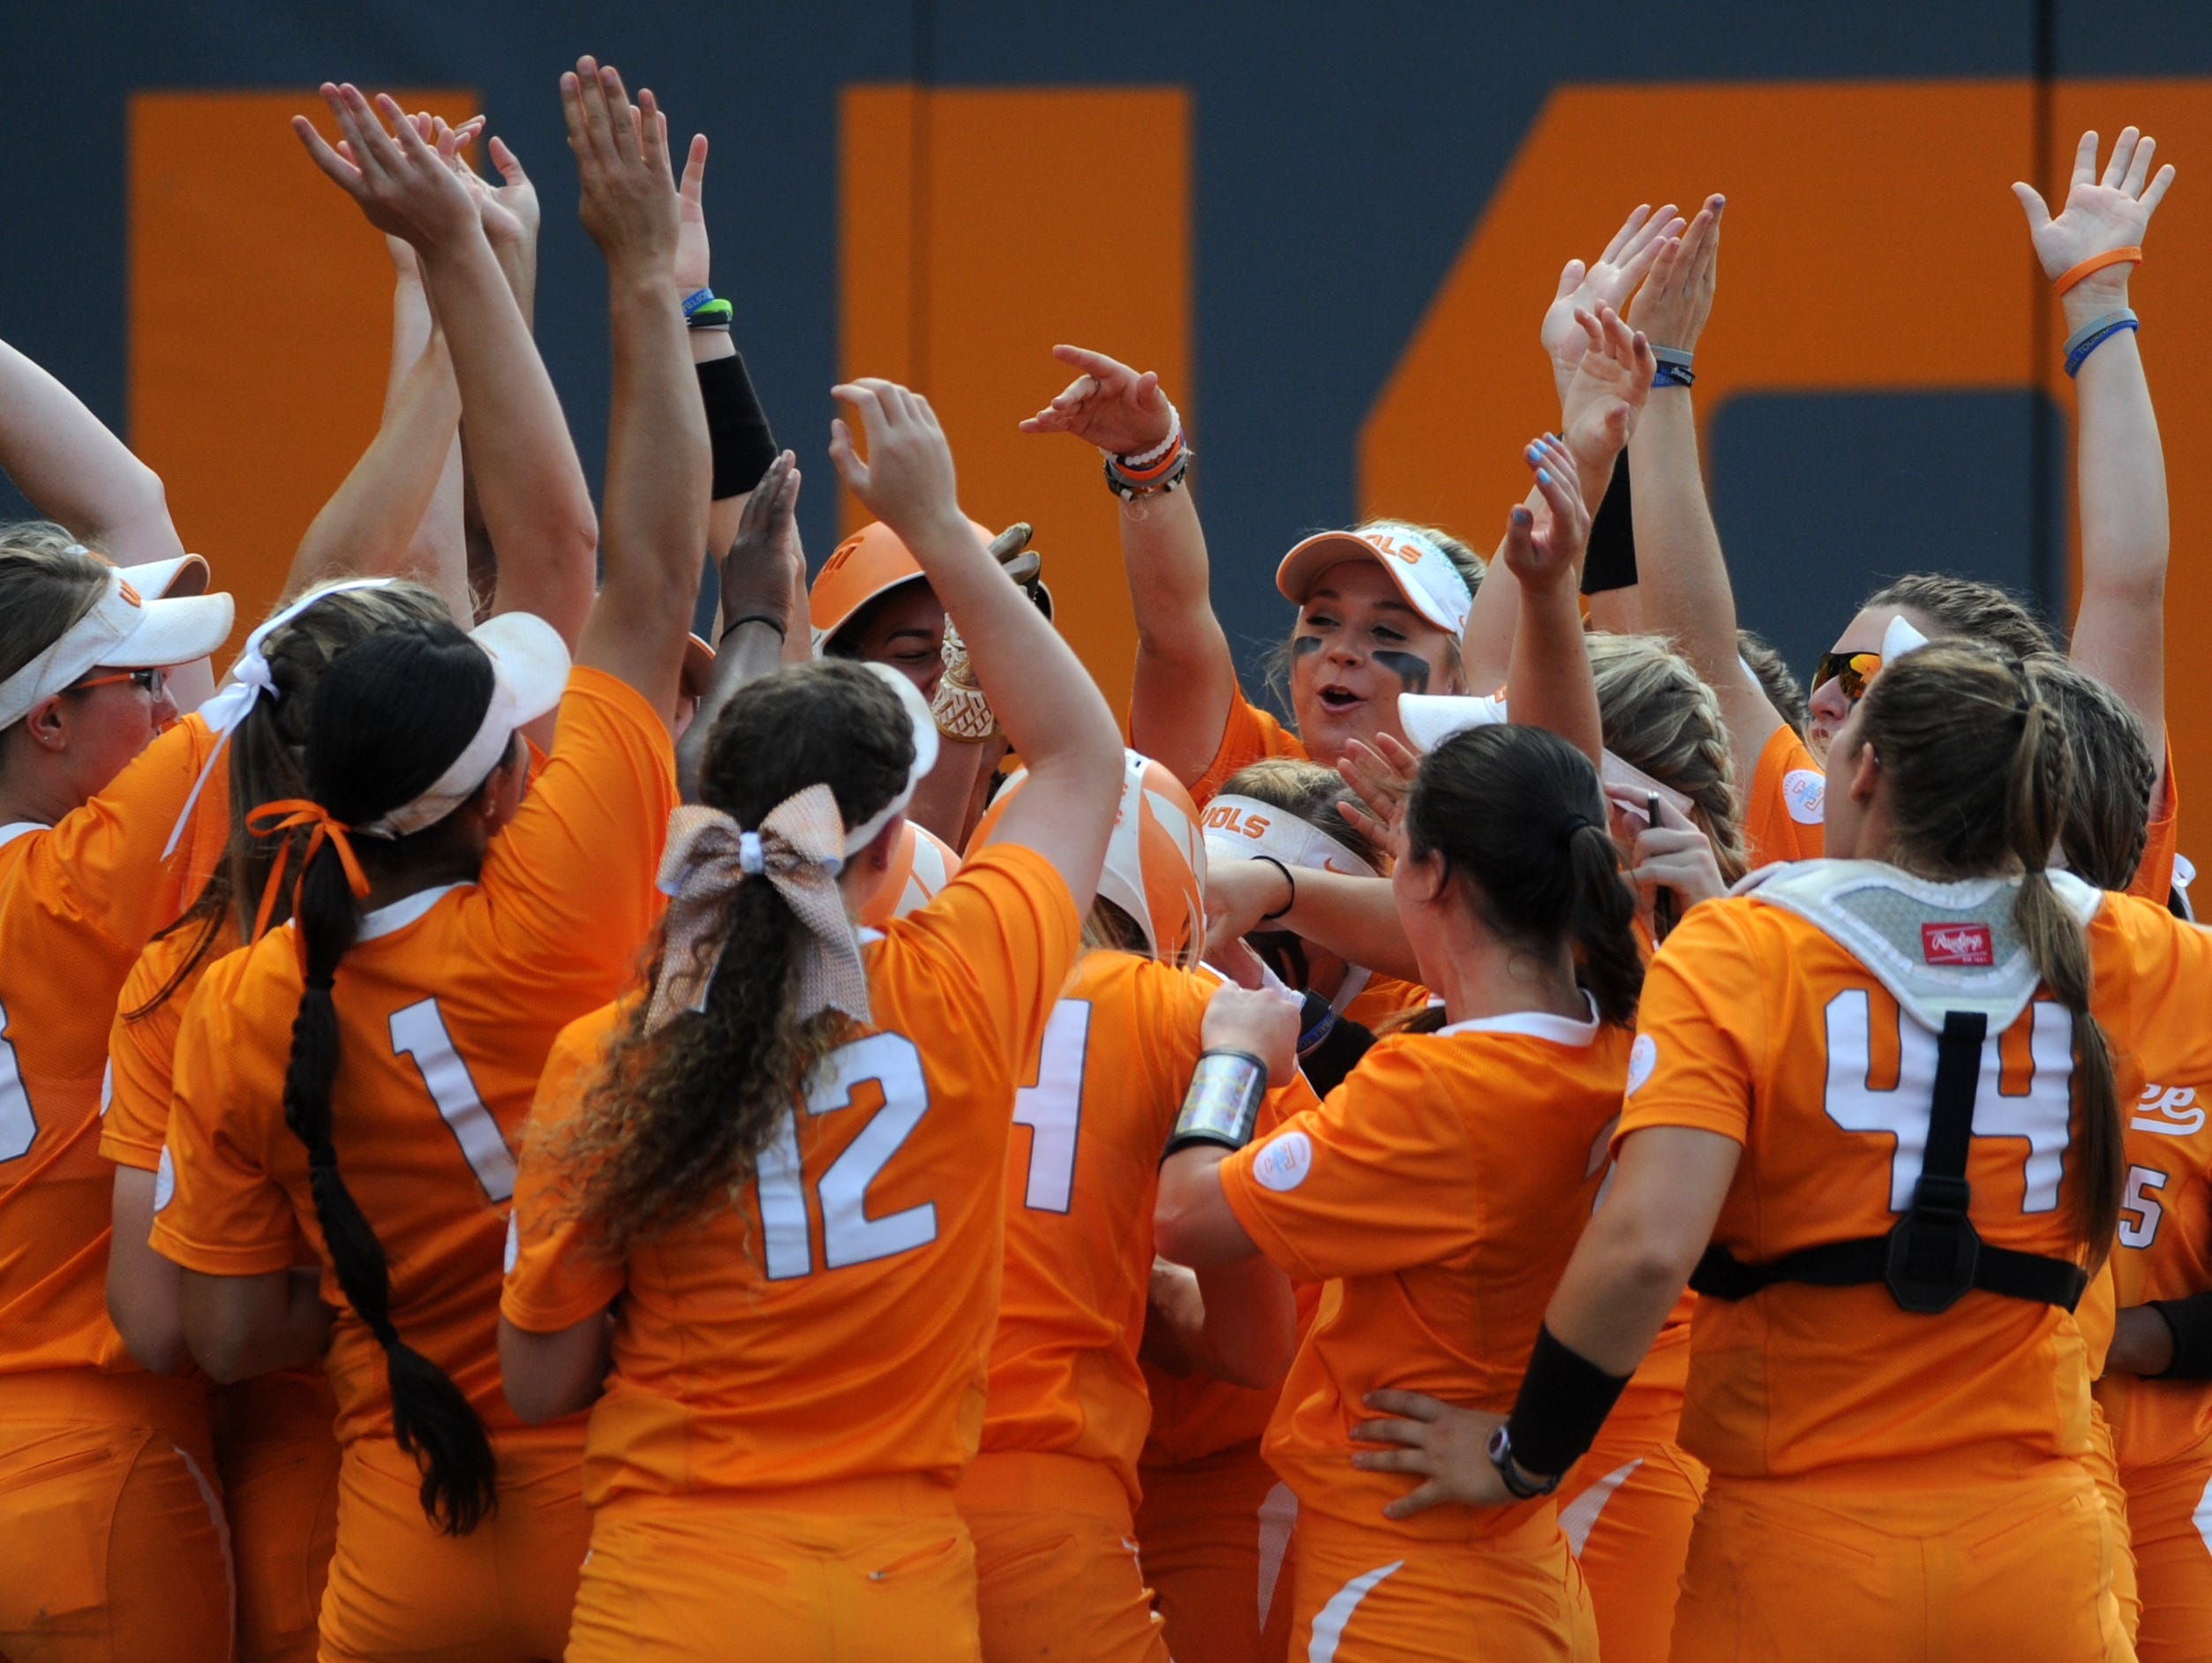 Tennessee players celebrate Tennessee's Meghan Gregg's (55) home run during an NCAA Super Regional game between Tennessee and Texas A&M at Sherri Parker Lee Stadium on Saturday, May 27, 2017.